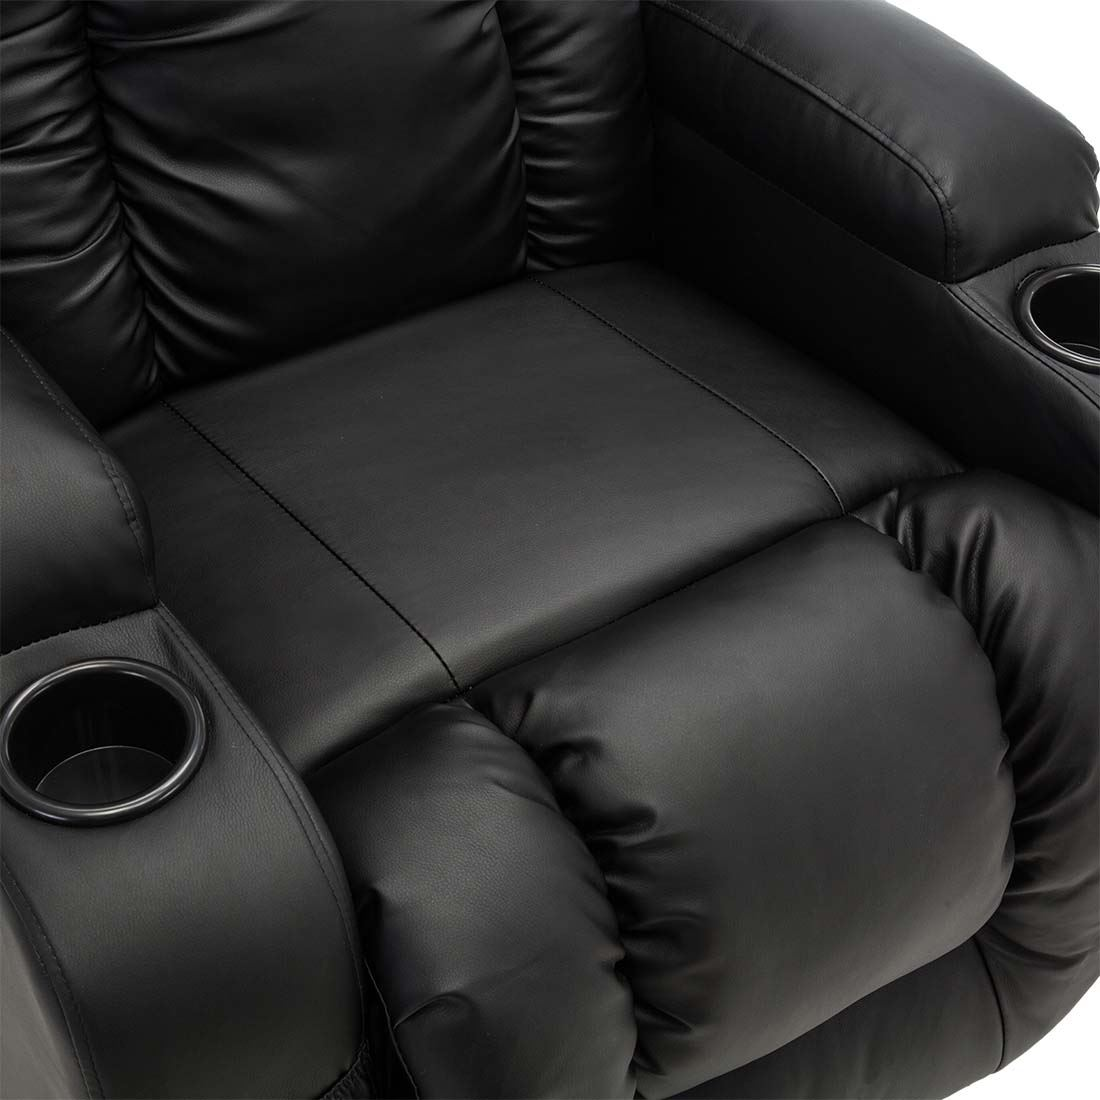 CAESAR-DUAL-MOTOR-RISER-RECLINER-LEATHER-MOBILITY-ARMCHAIR-MASSAGE-HEATED-CHAIR thumbnail 7